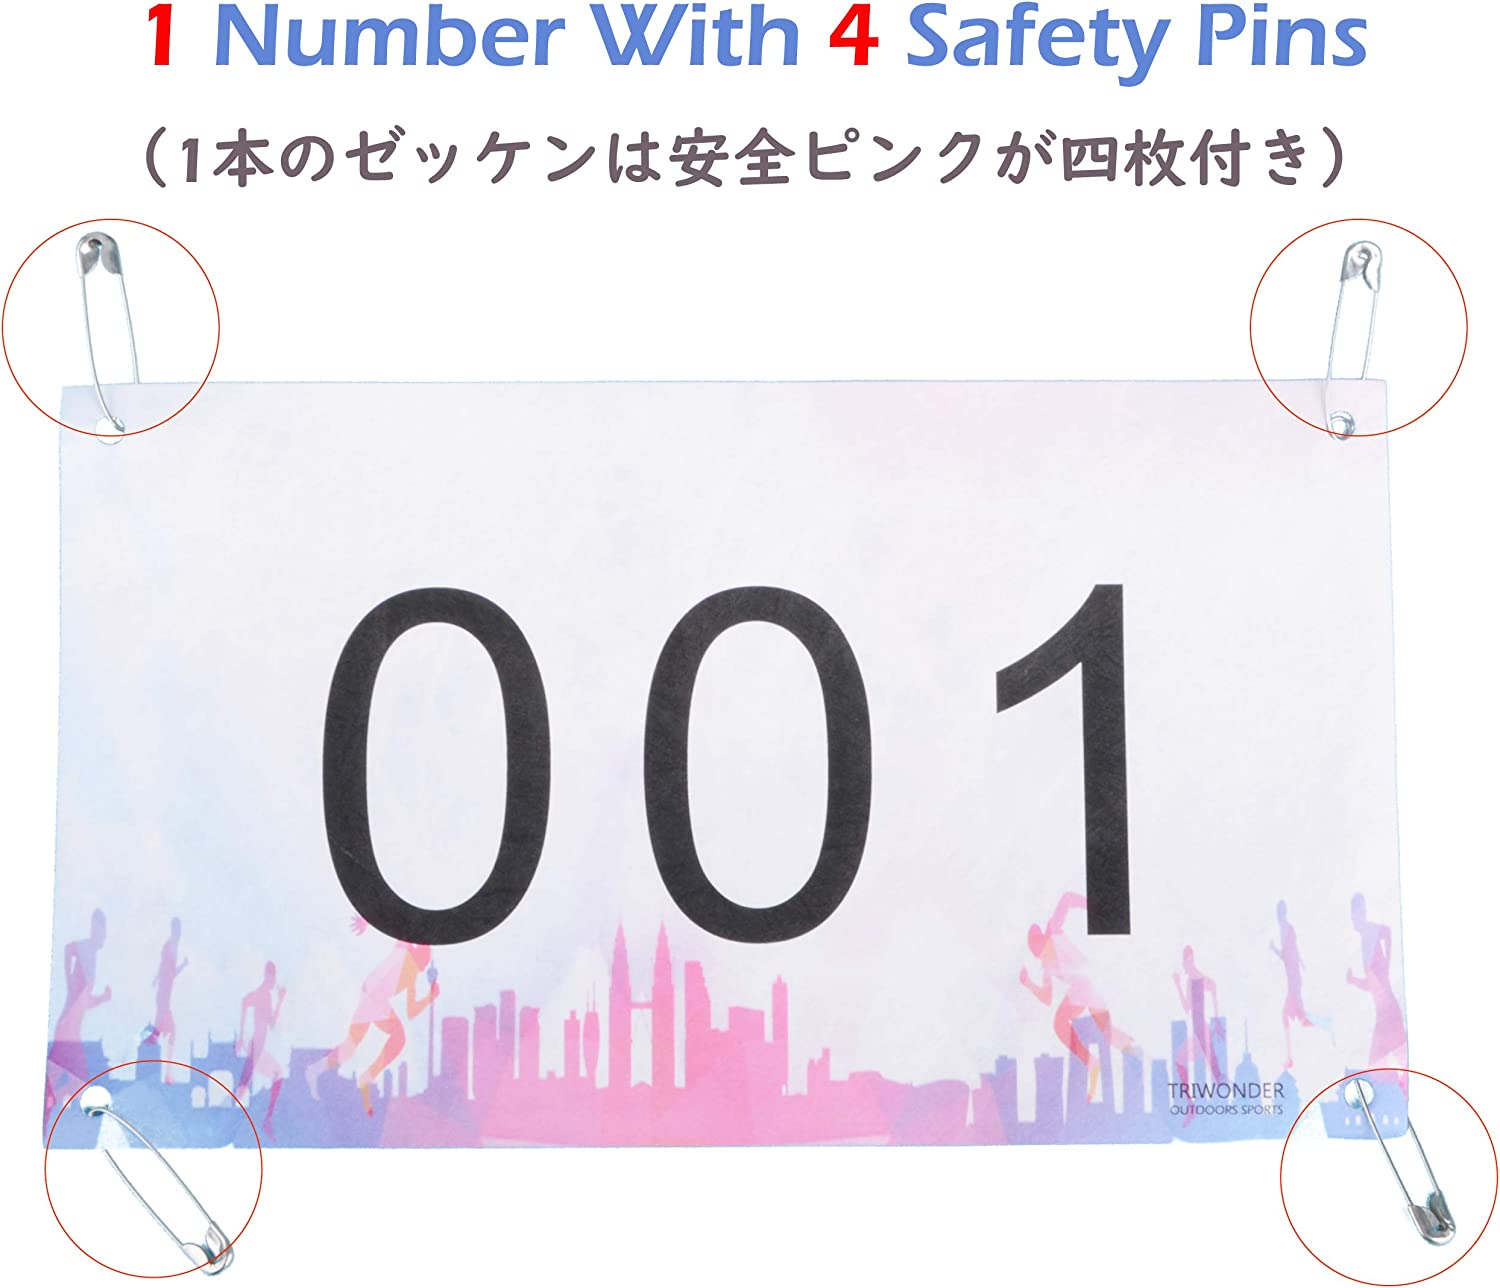 4x7 TRIWONDER Tyvek Race Bib Competitor Numbers with Safety Pins Tearproof and Waterproof for Marathon Races and Events Set of 001-100 or 001-200